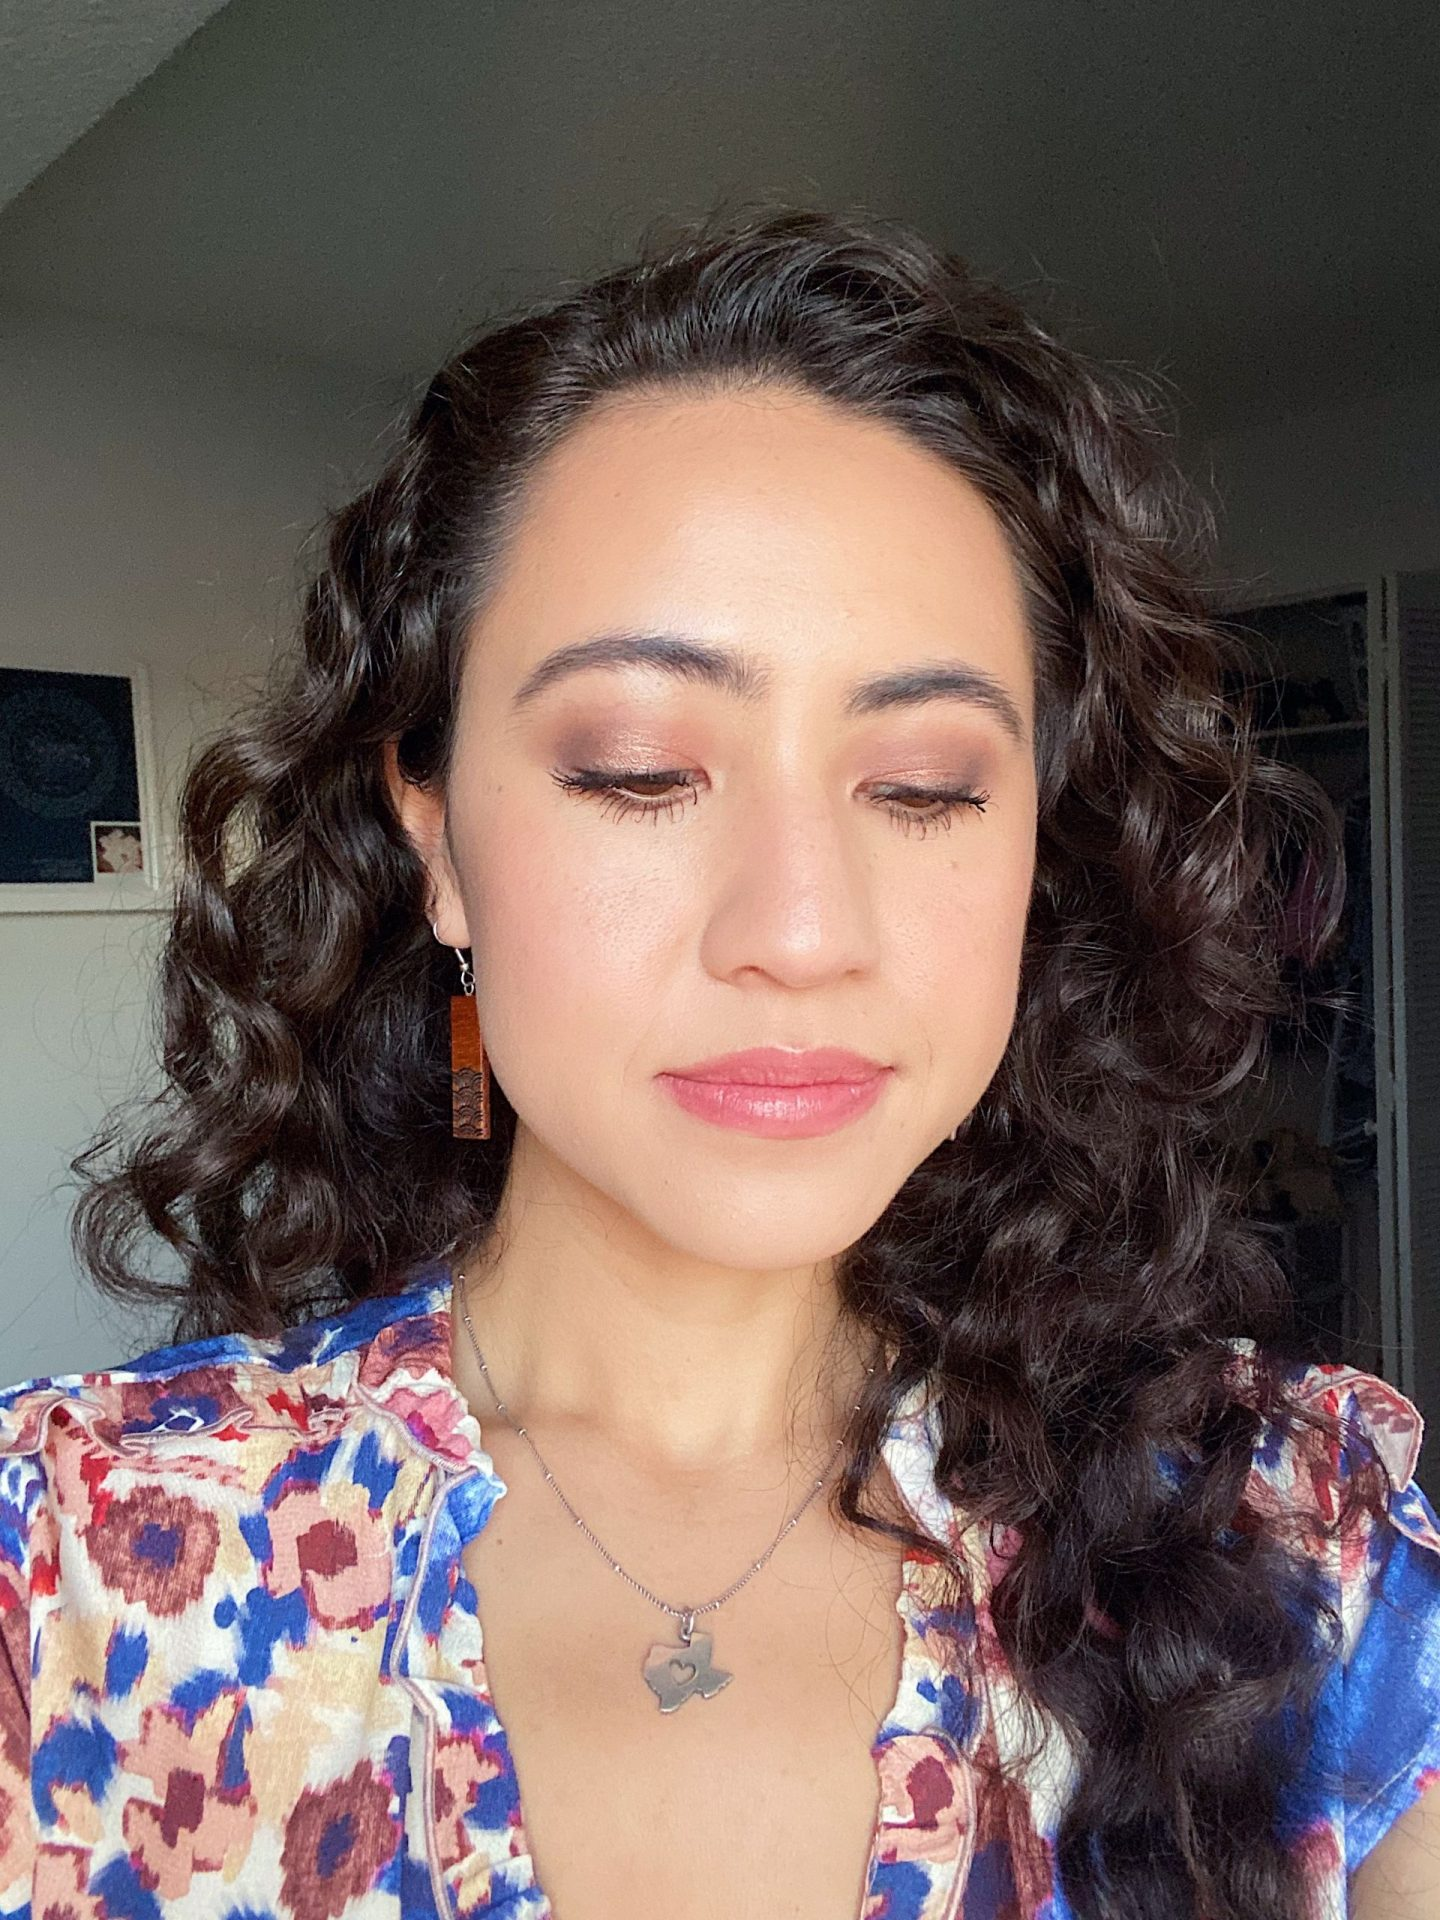 My makeup for date night